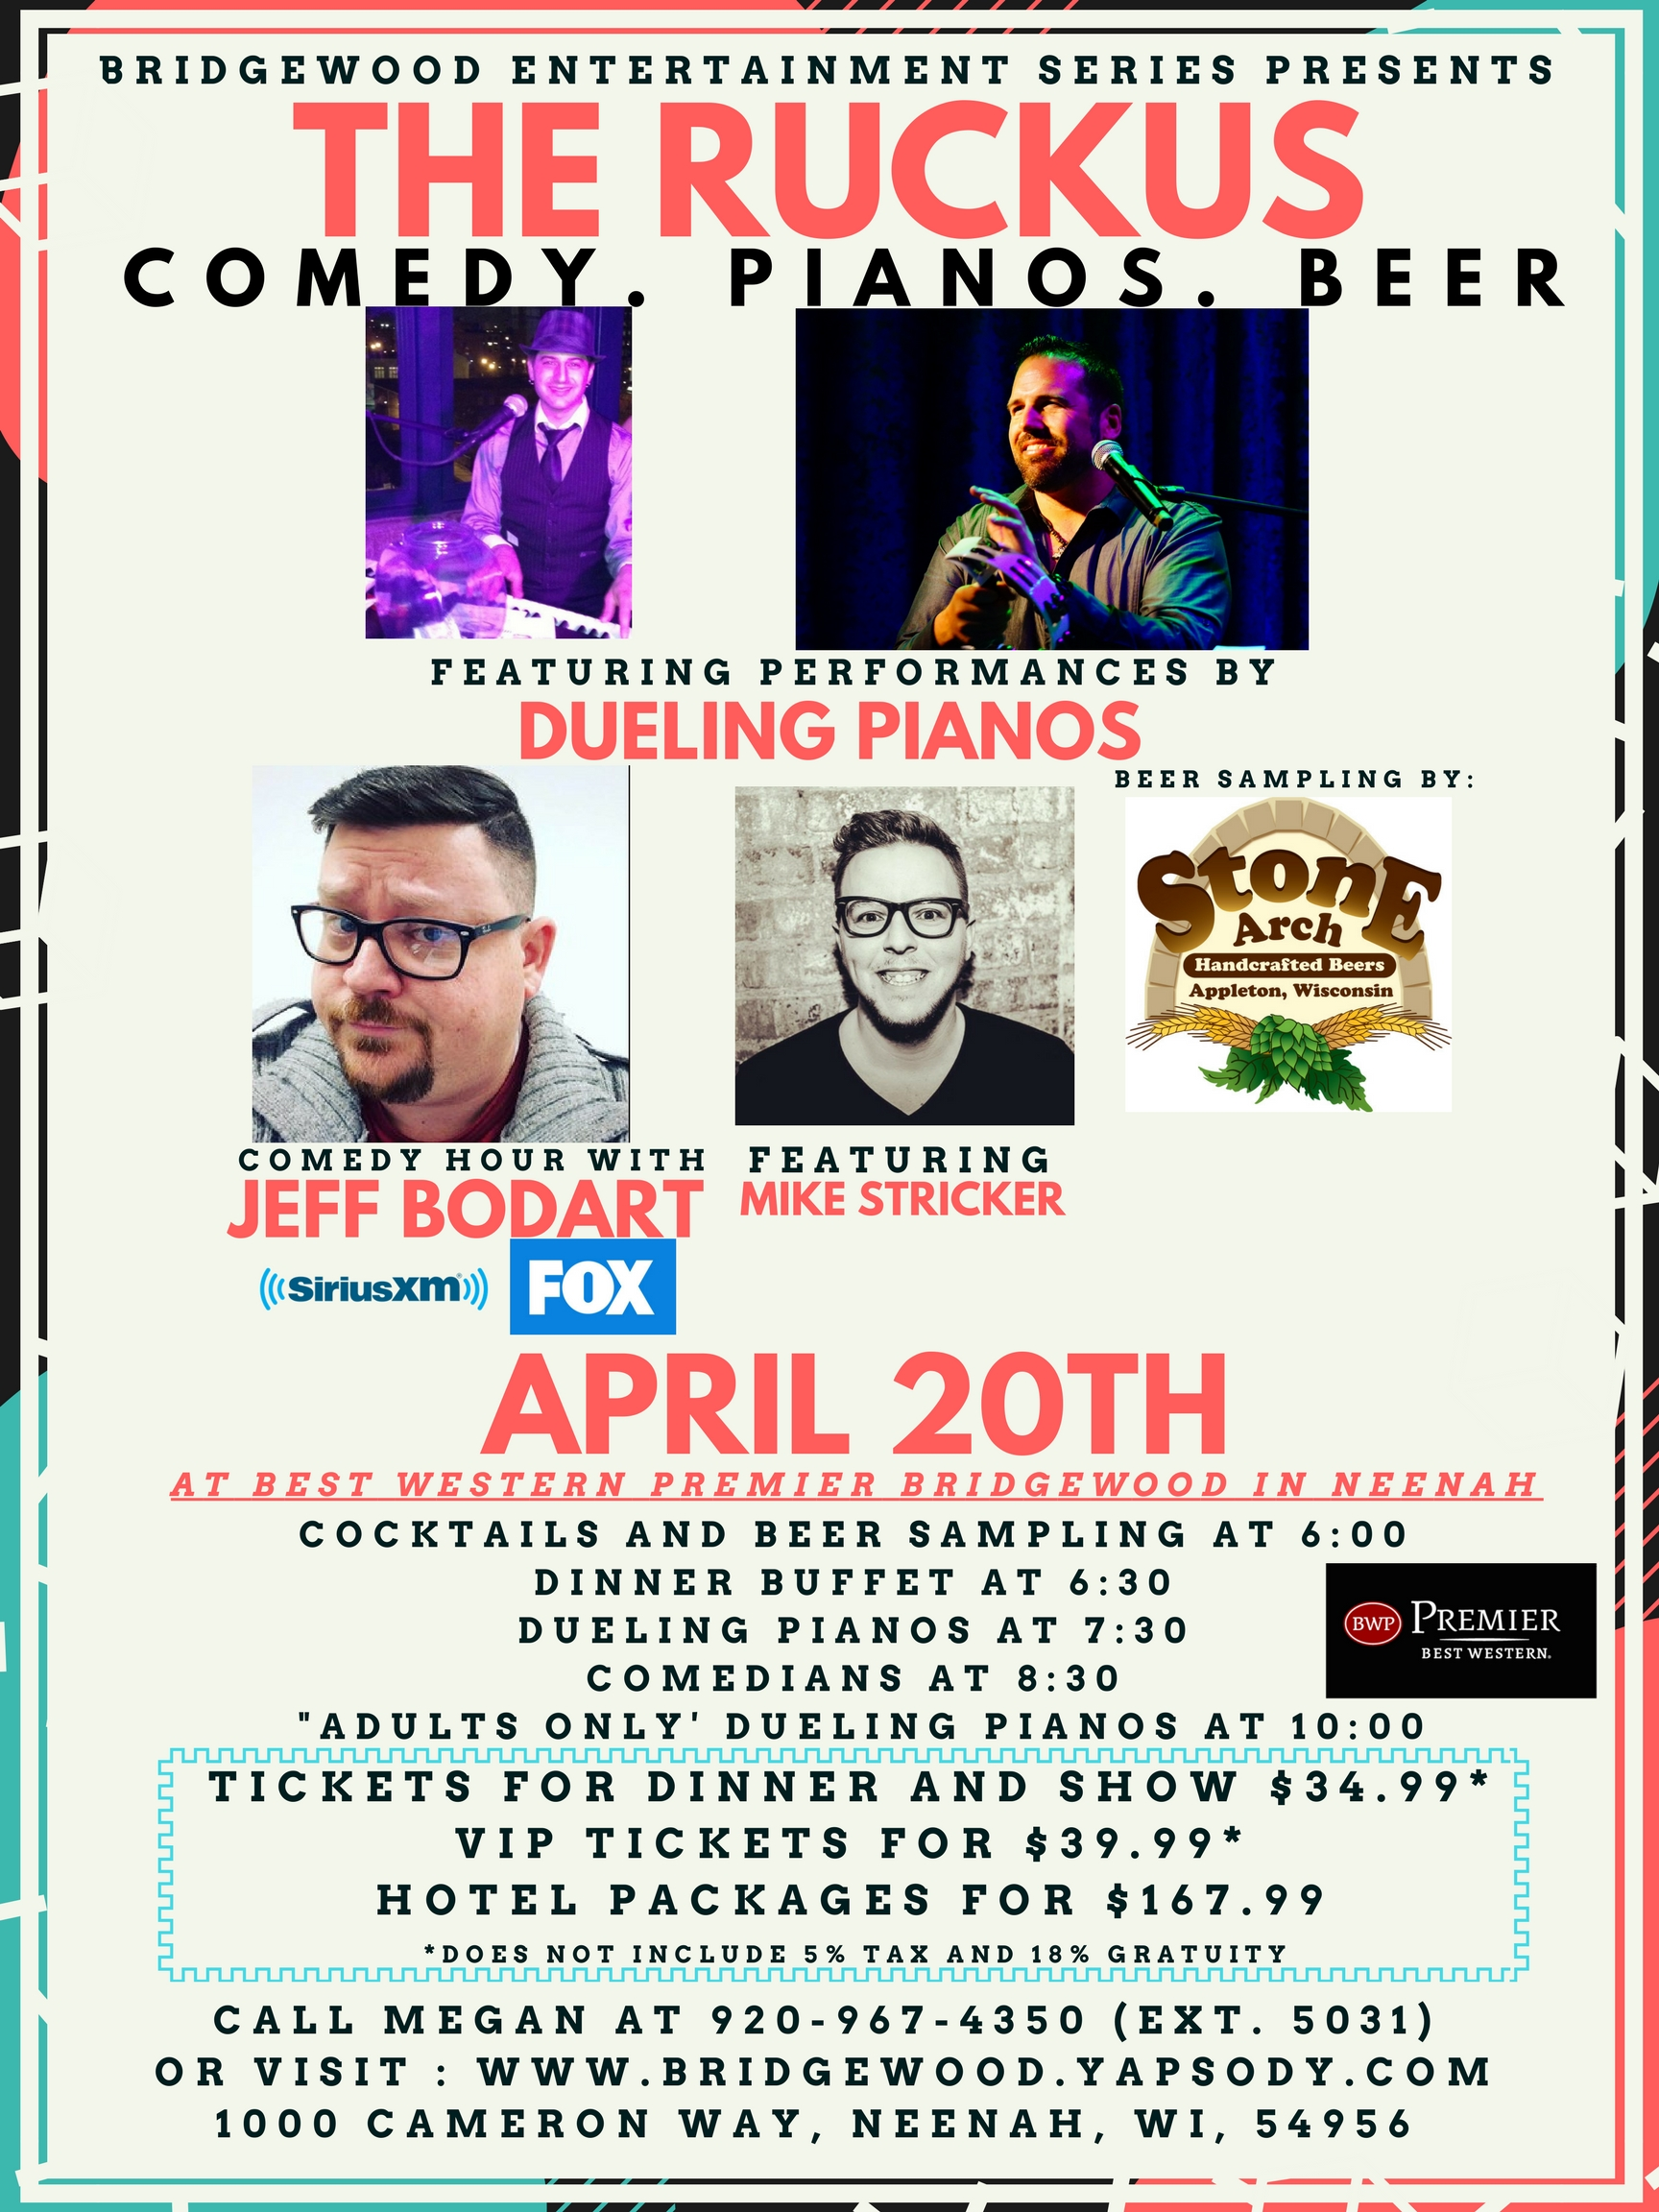 The Ruckus with Comic Jeff Bodart and Dueling Pianos